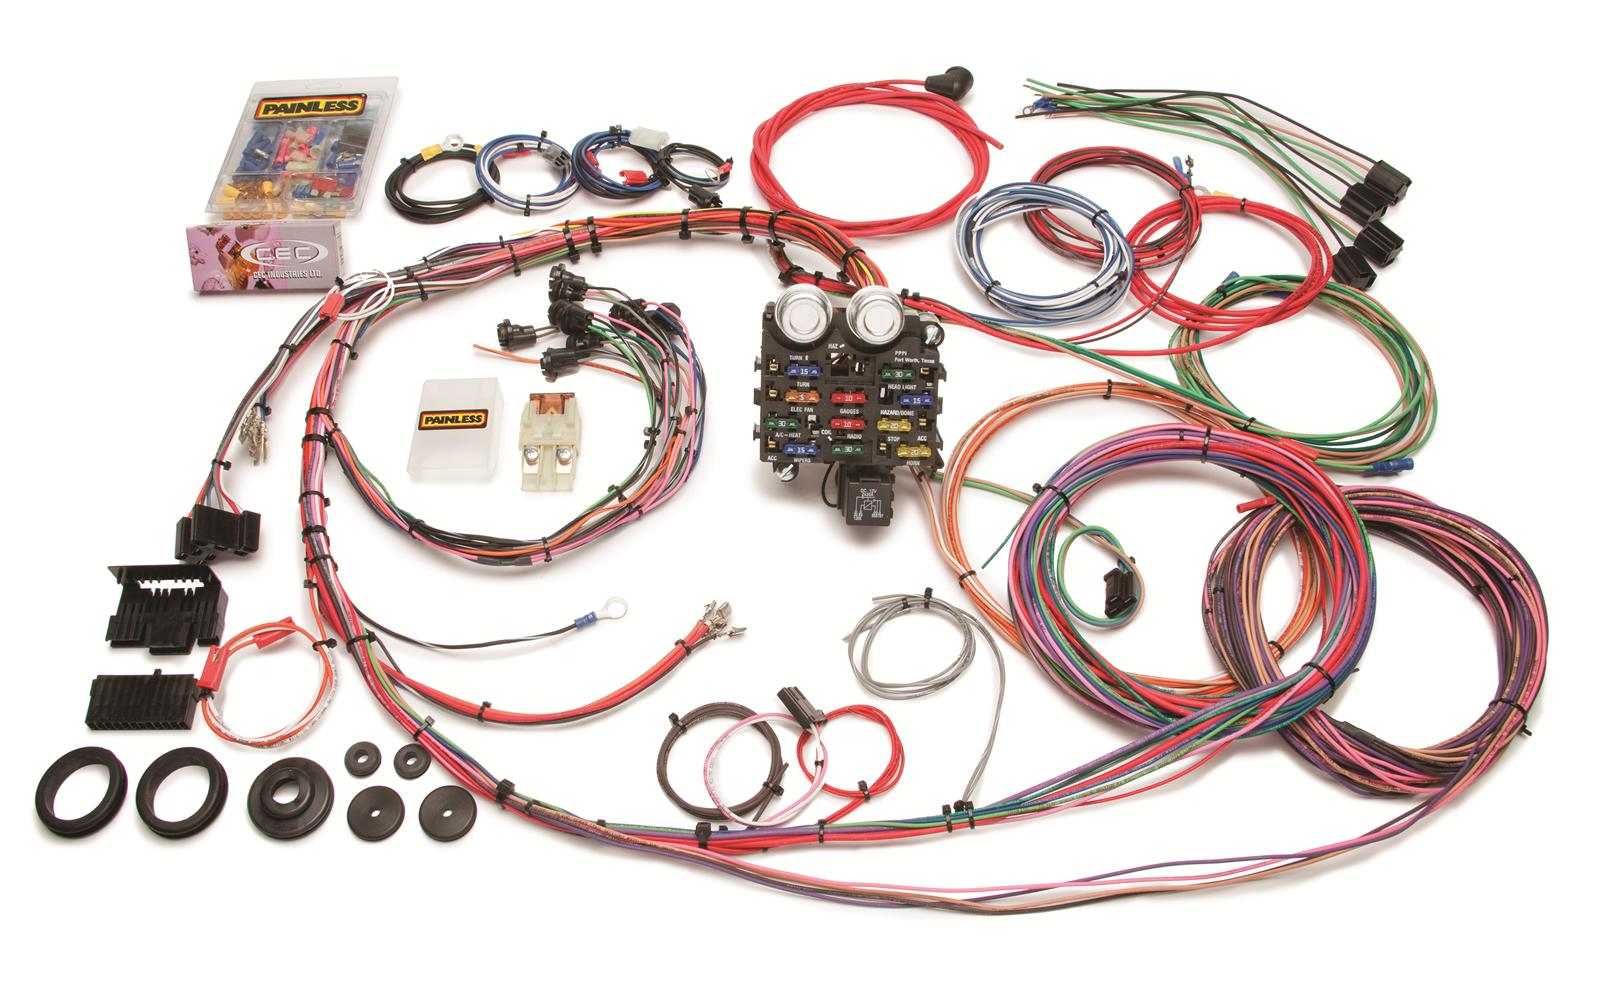 prf 10112_xl painless performance 19 circuit gmc chevy truck harnesses 10112 gm truck wiring harness at fashall.co